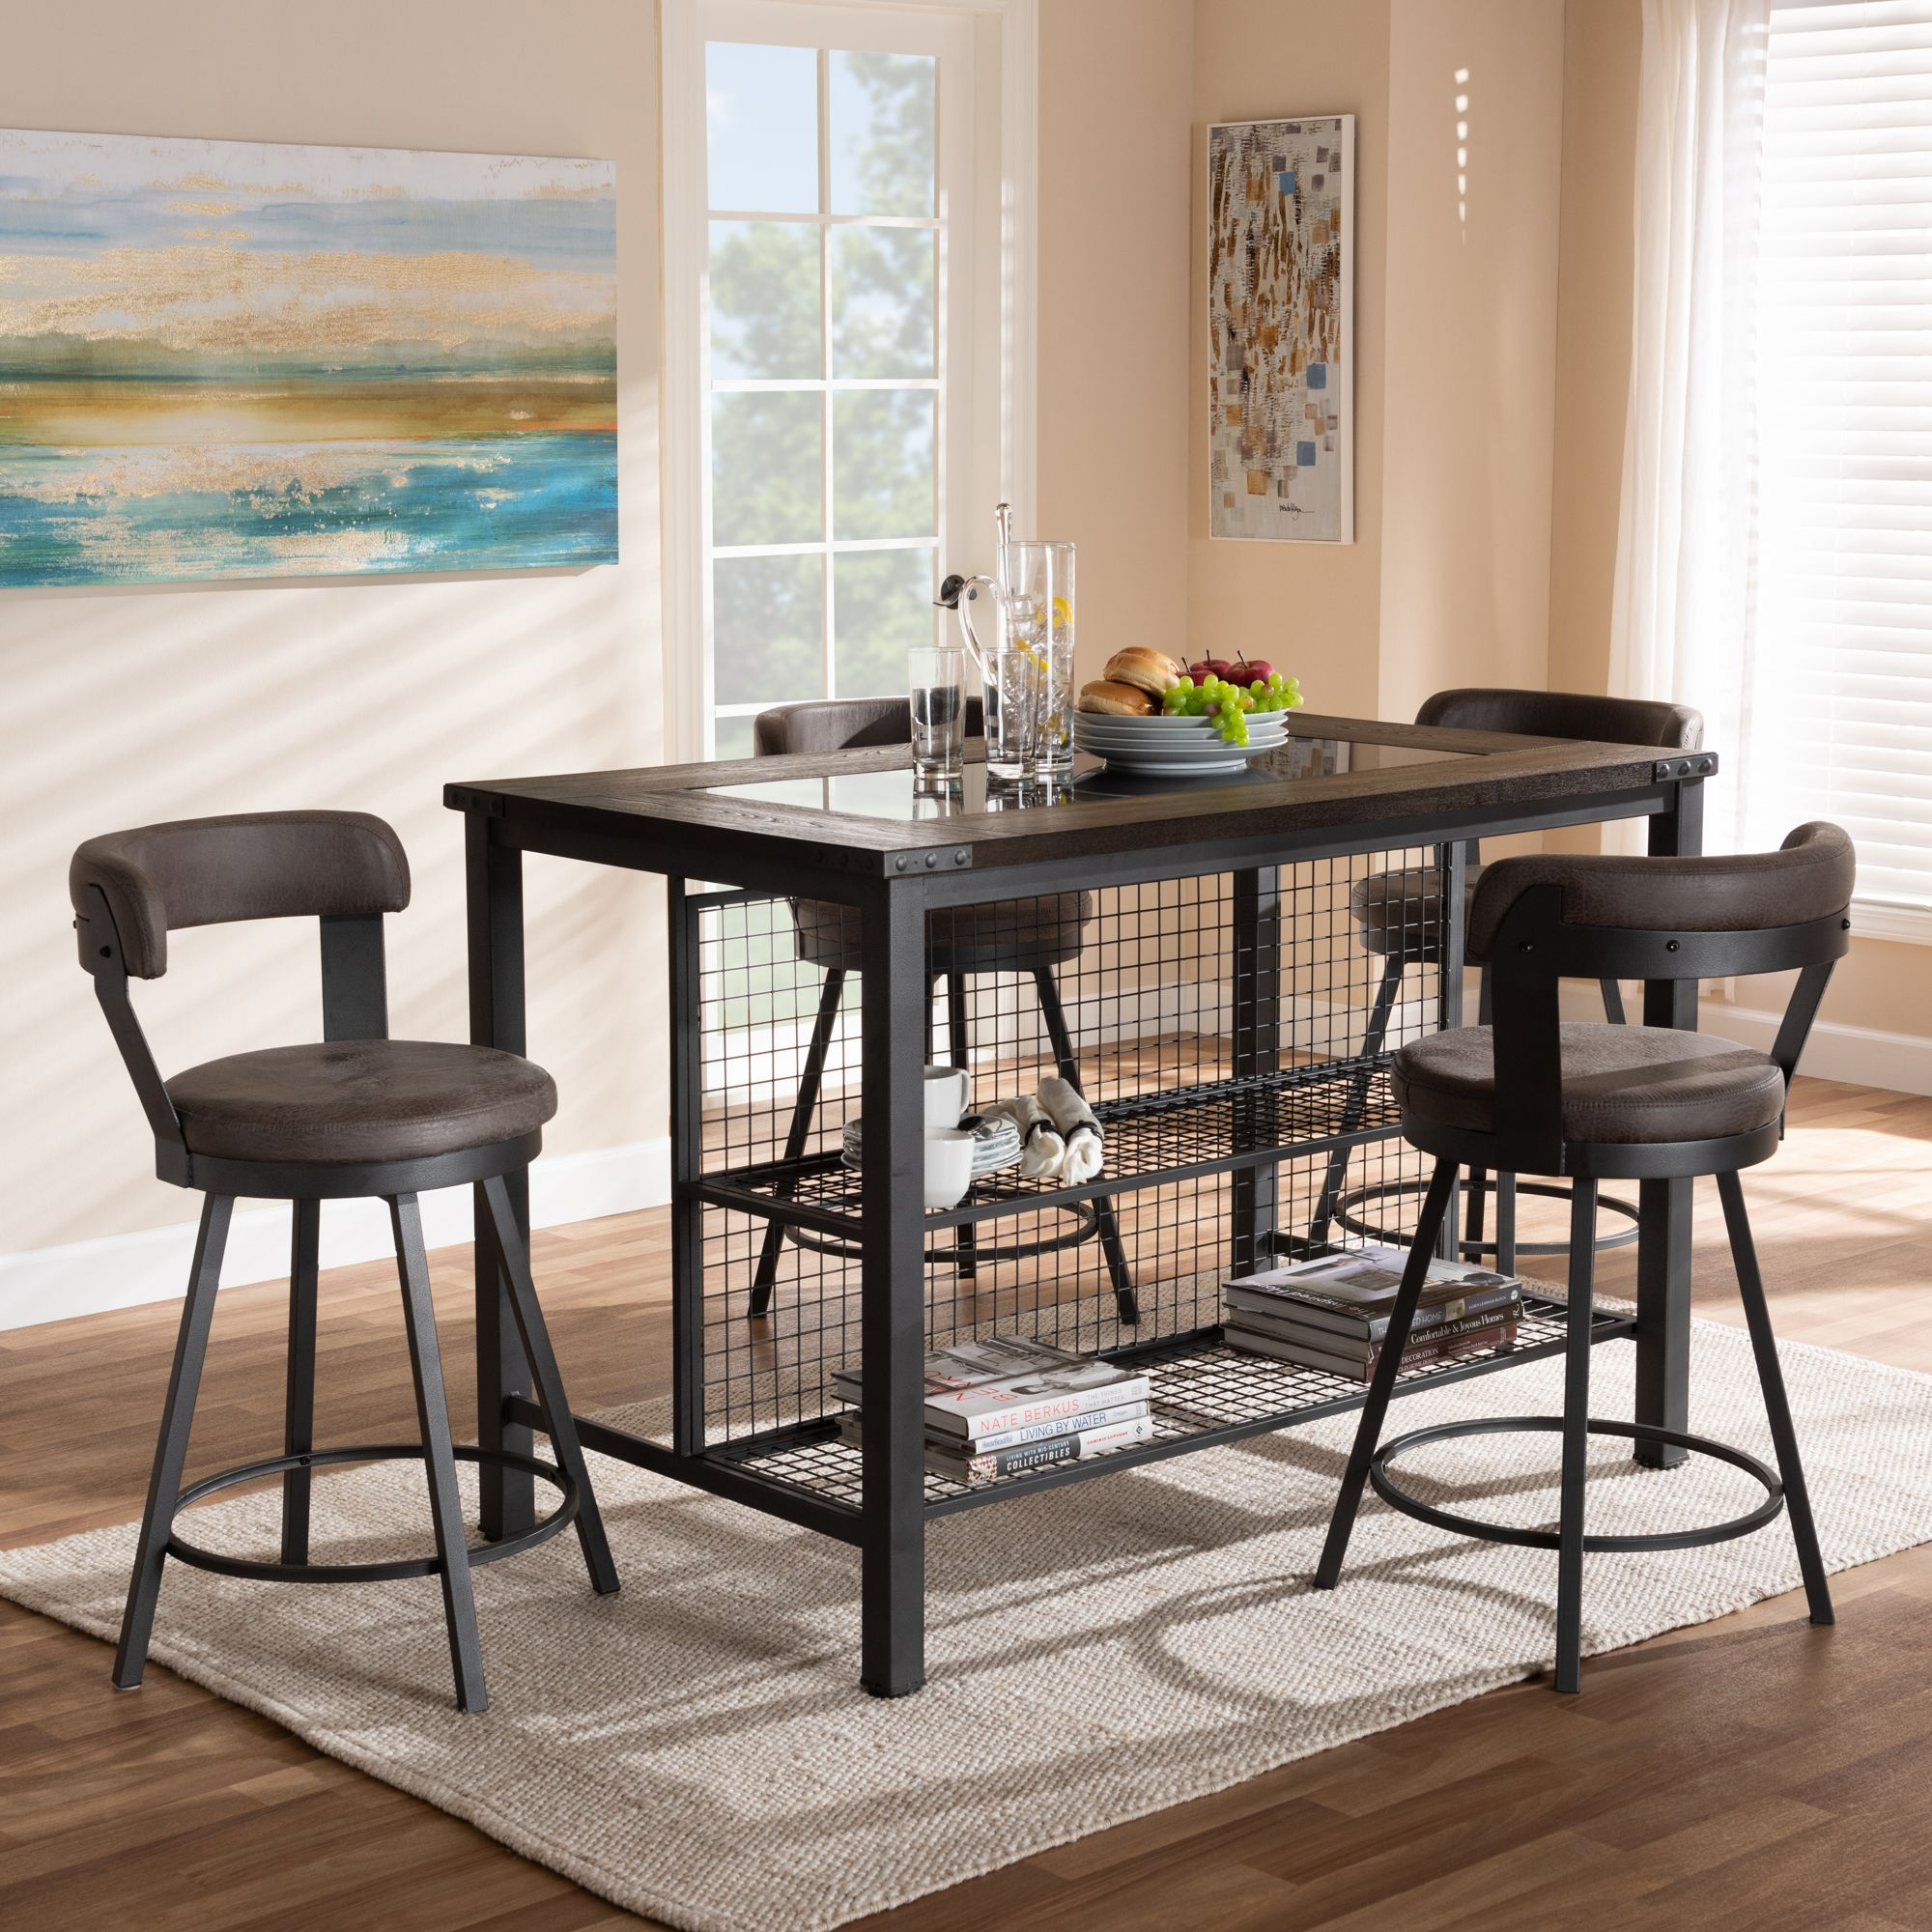 Most Current Baxton Studio Arcene Rustic And Industrial Antique Grey Faux Leather With Wiggs 5 Piece Dining Sets (View 20 of 20)